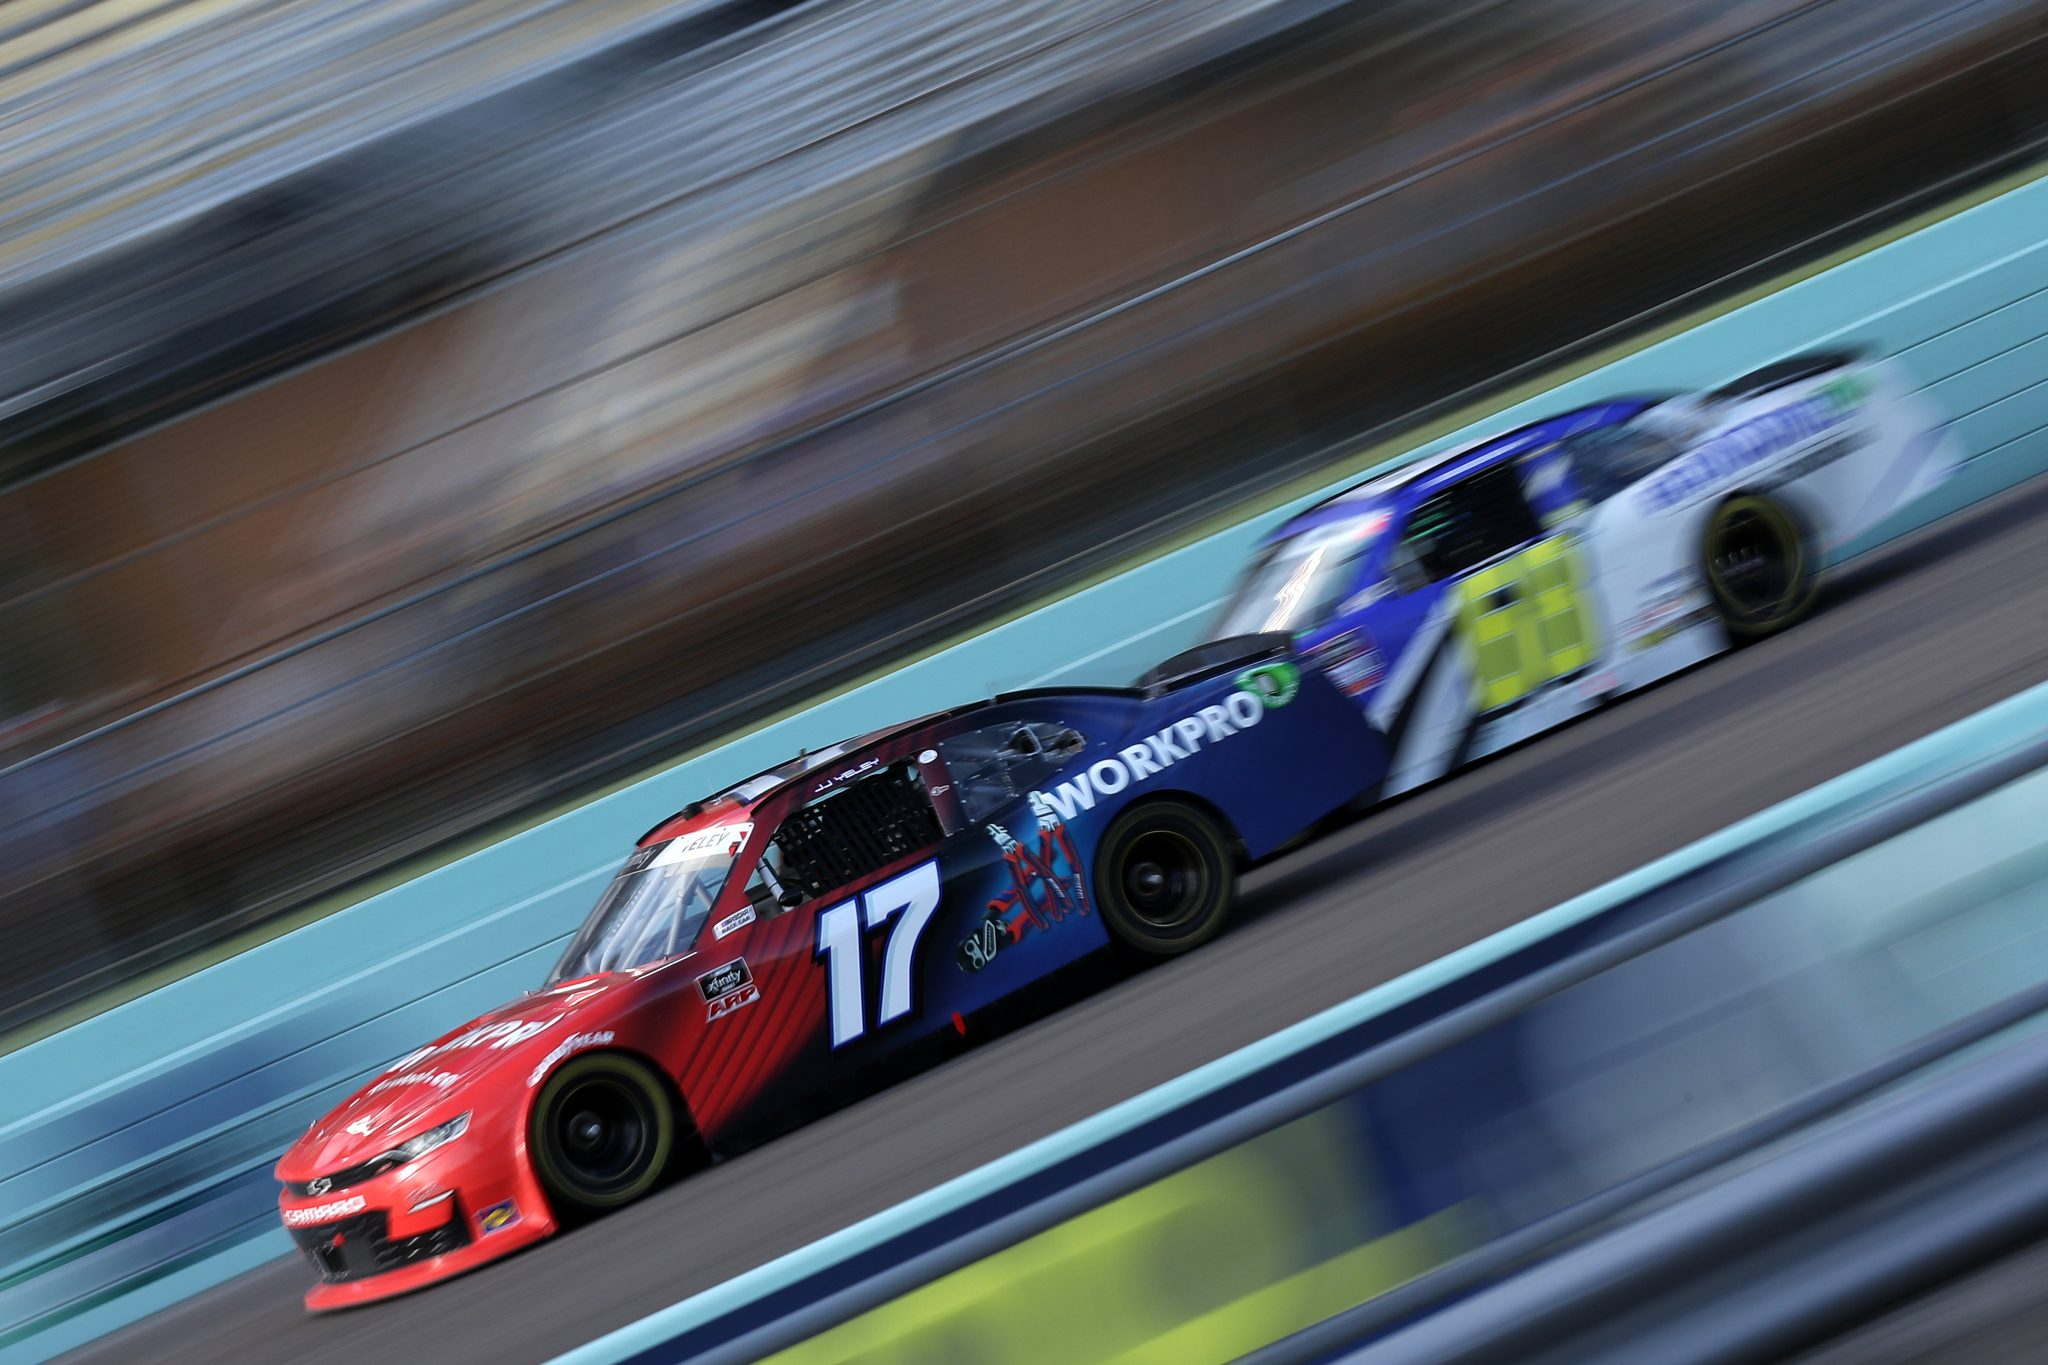 HOMESTEAD, FLORIDA - FEBRUARY 27: JJ Yeley, driver of the #17 Work Pro Chevrolet, drives during the NASCAR Xfinity Series Contender Boats 250 at Homestead-Miami Speedway on February 27, 2021 in Homestead, Florida. (Photo by Sean Gardner/Getty Images) | Getty Images